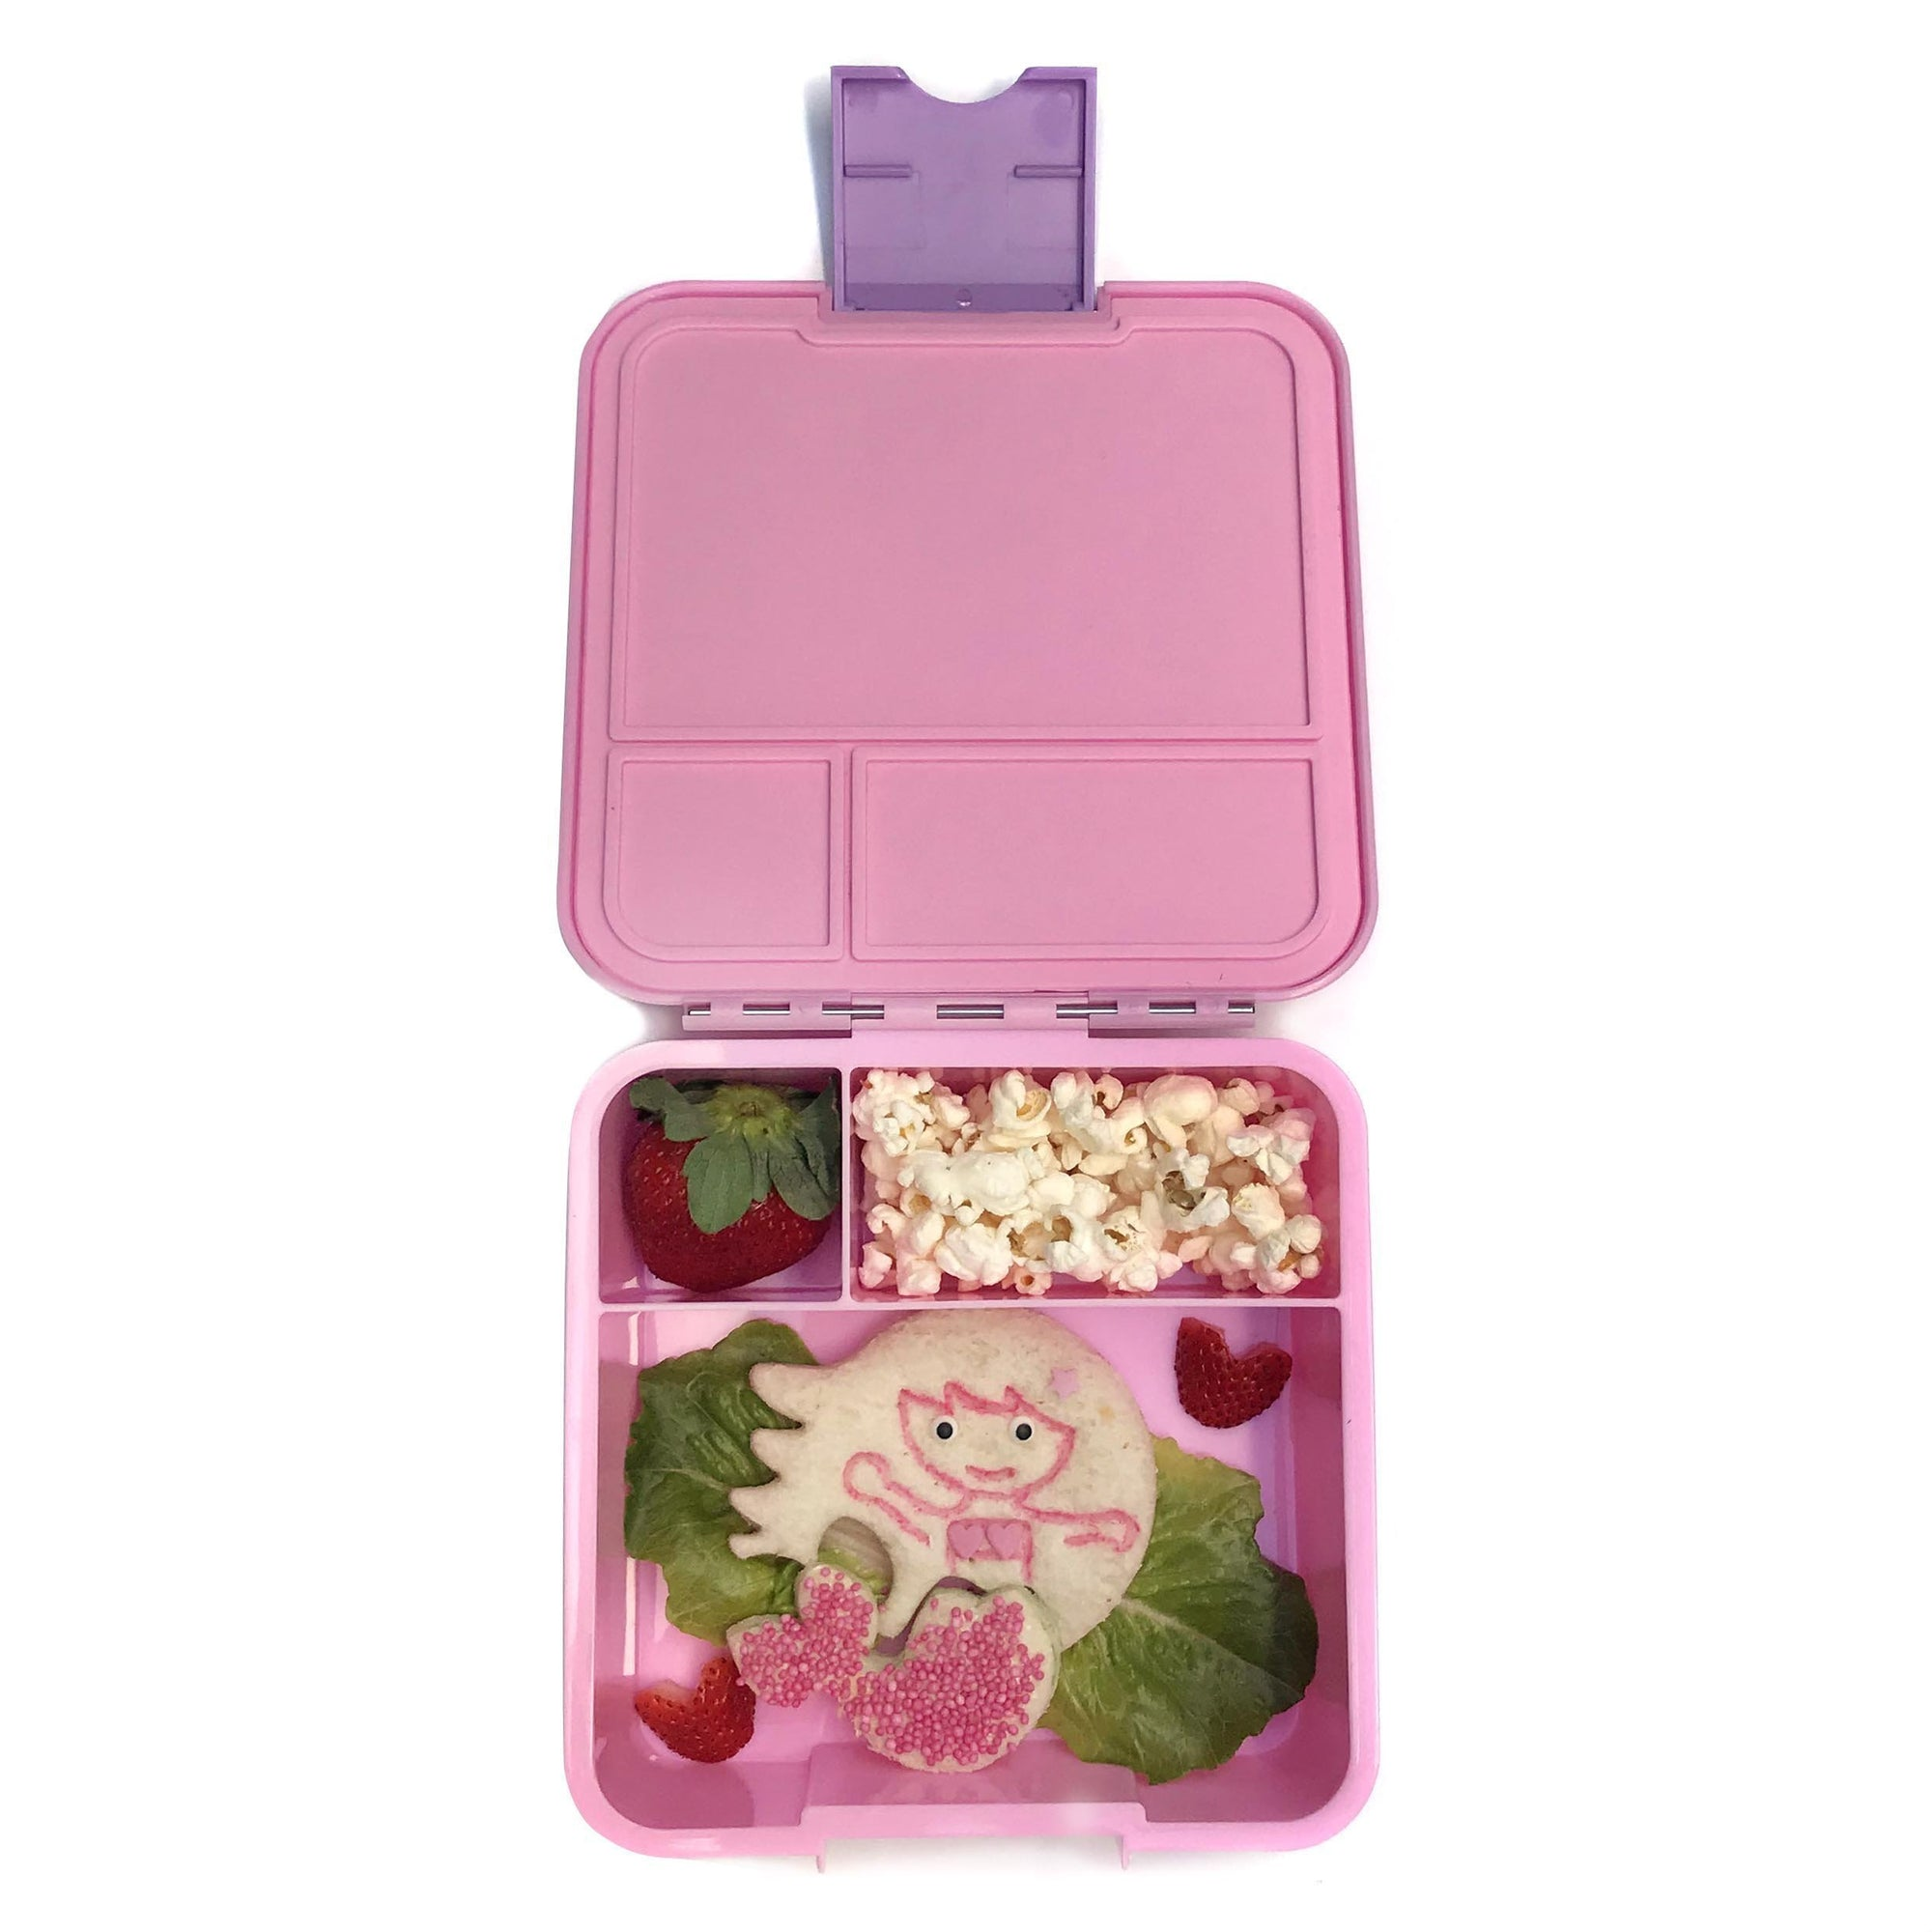 Little Lunch Box Co - Bento Three - Mermaid